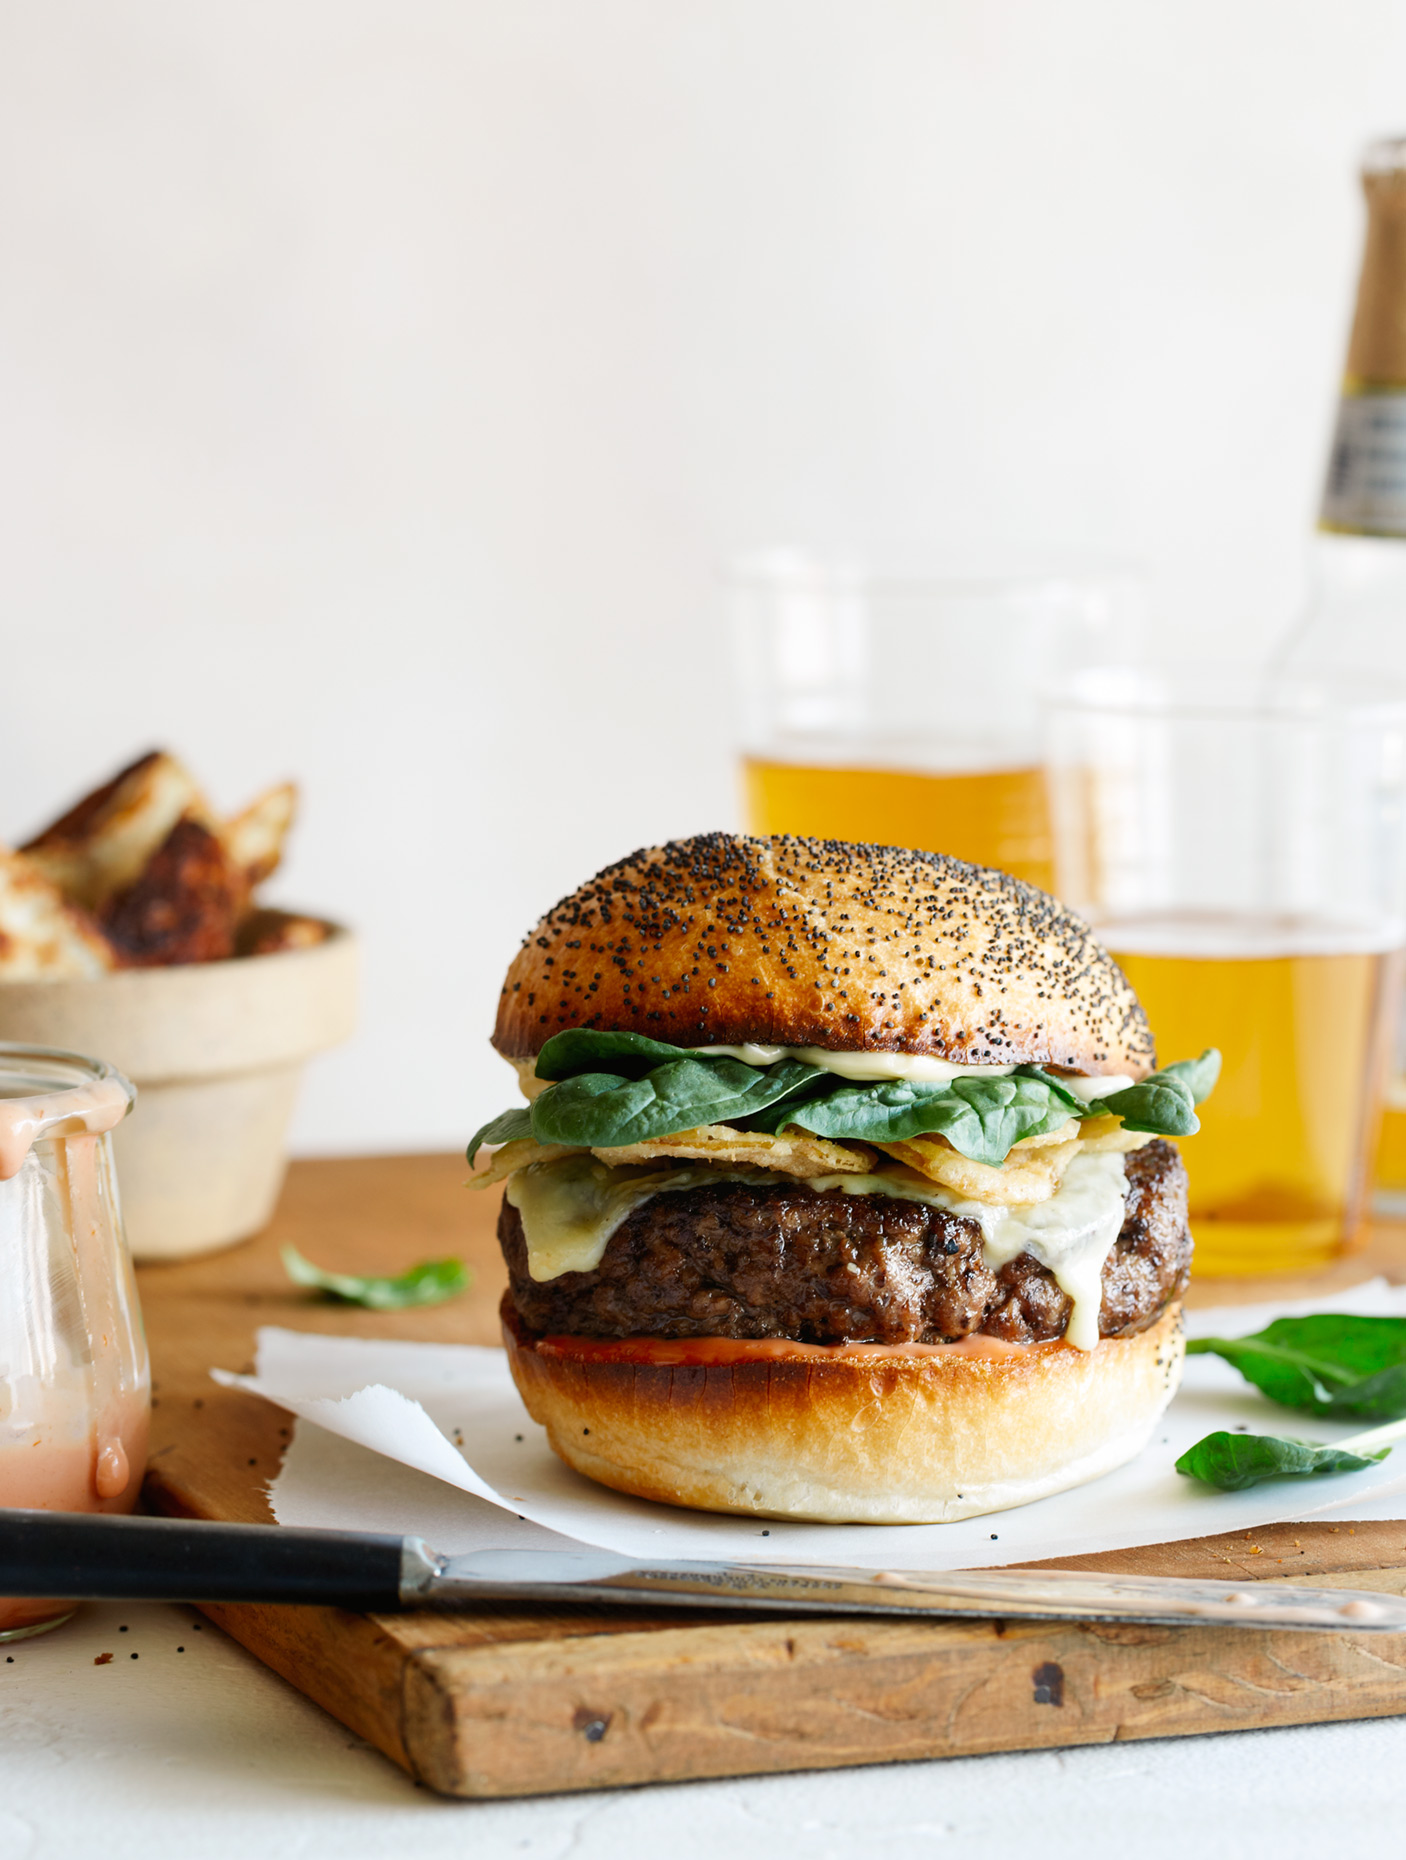 Specialty Burger photography by Teri Lyn Fisher photographer